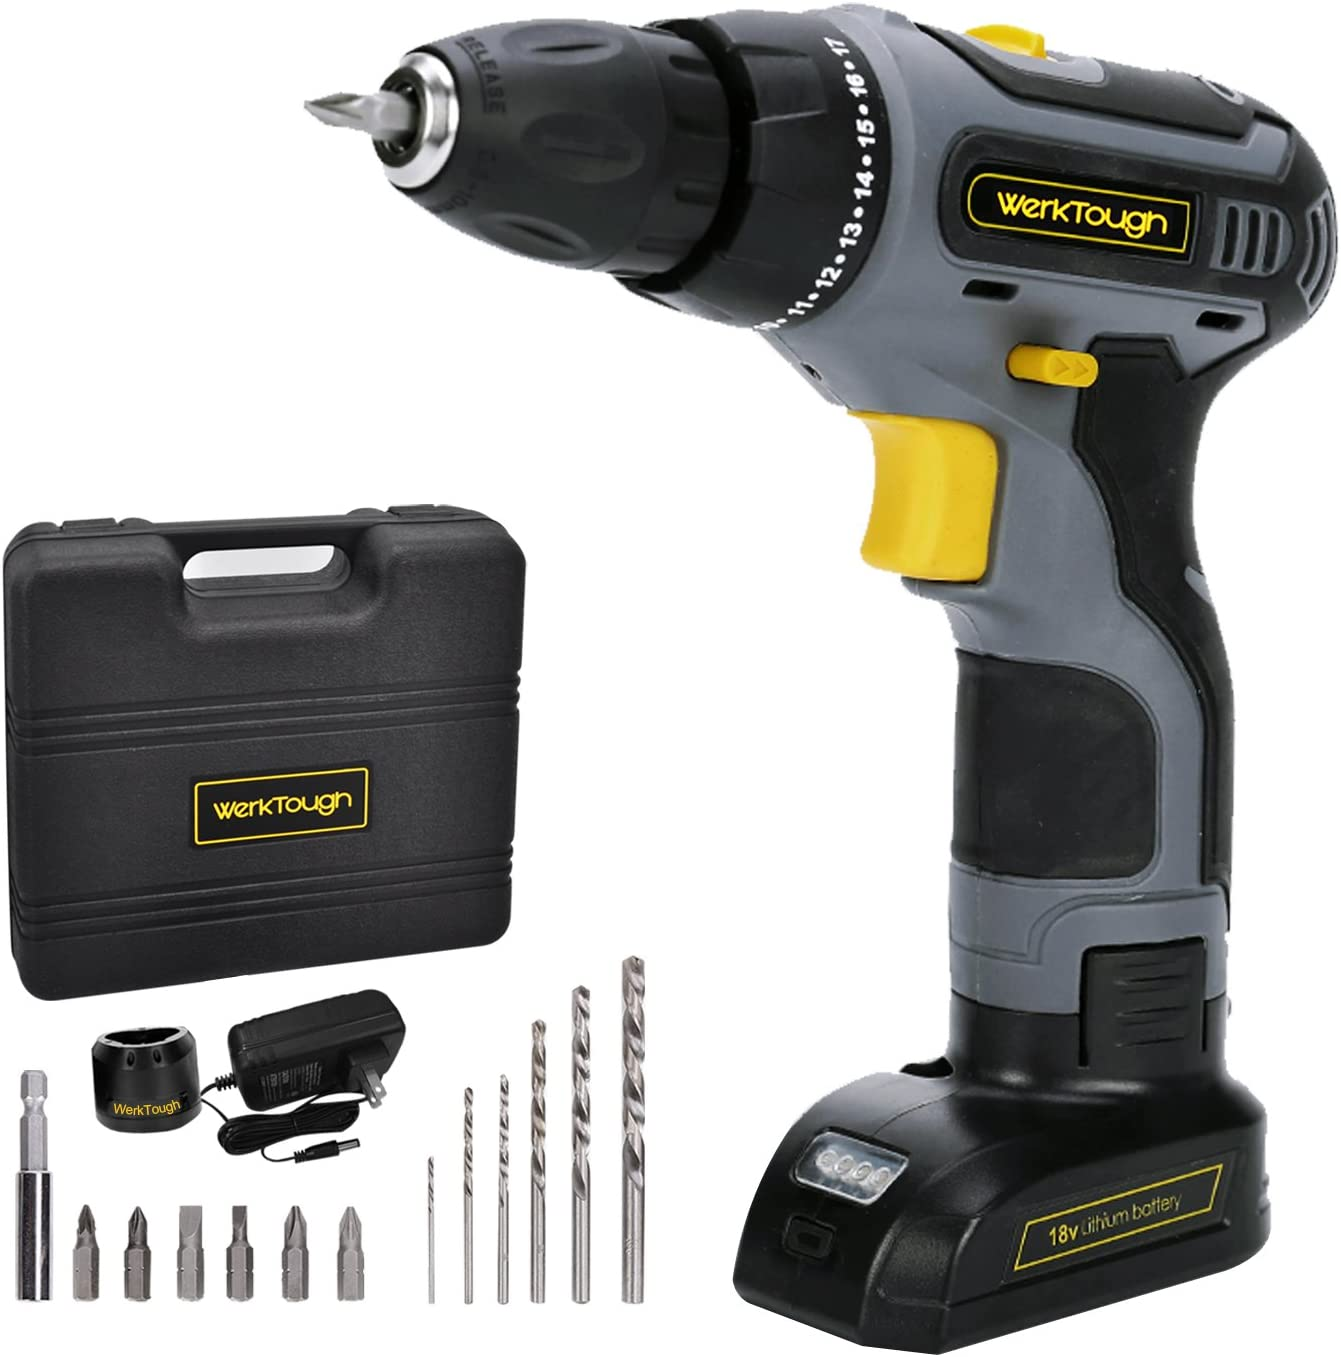 Werktough D011 18V Cordless Drill Driver 2 Viable Speed Powerful Screwdriver Li-ion Battery Accessories